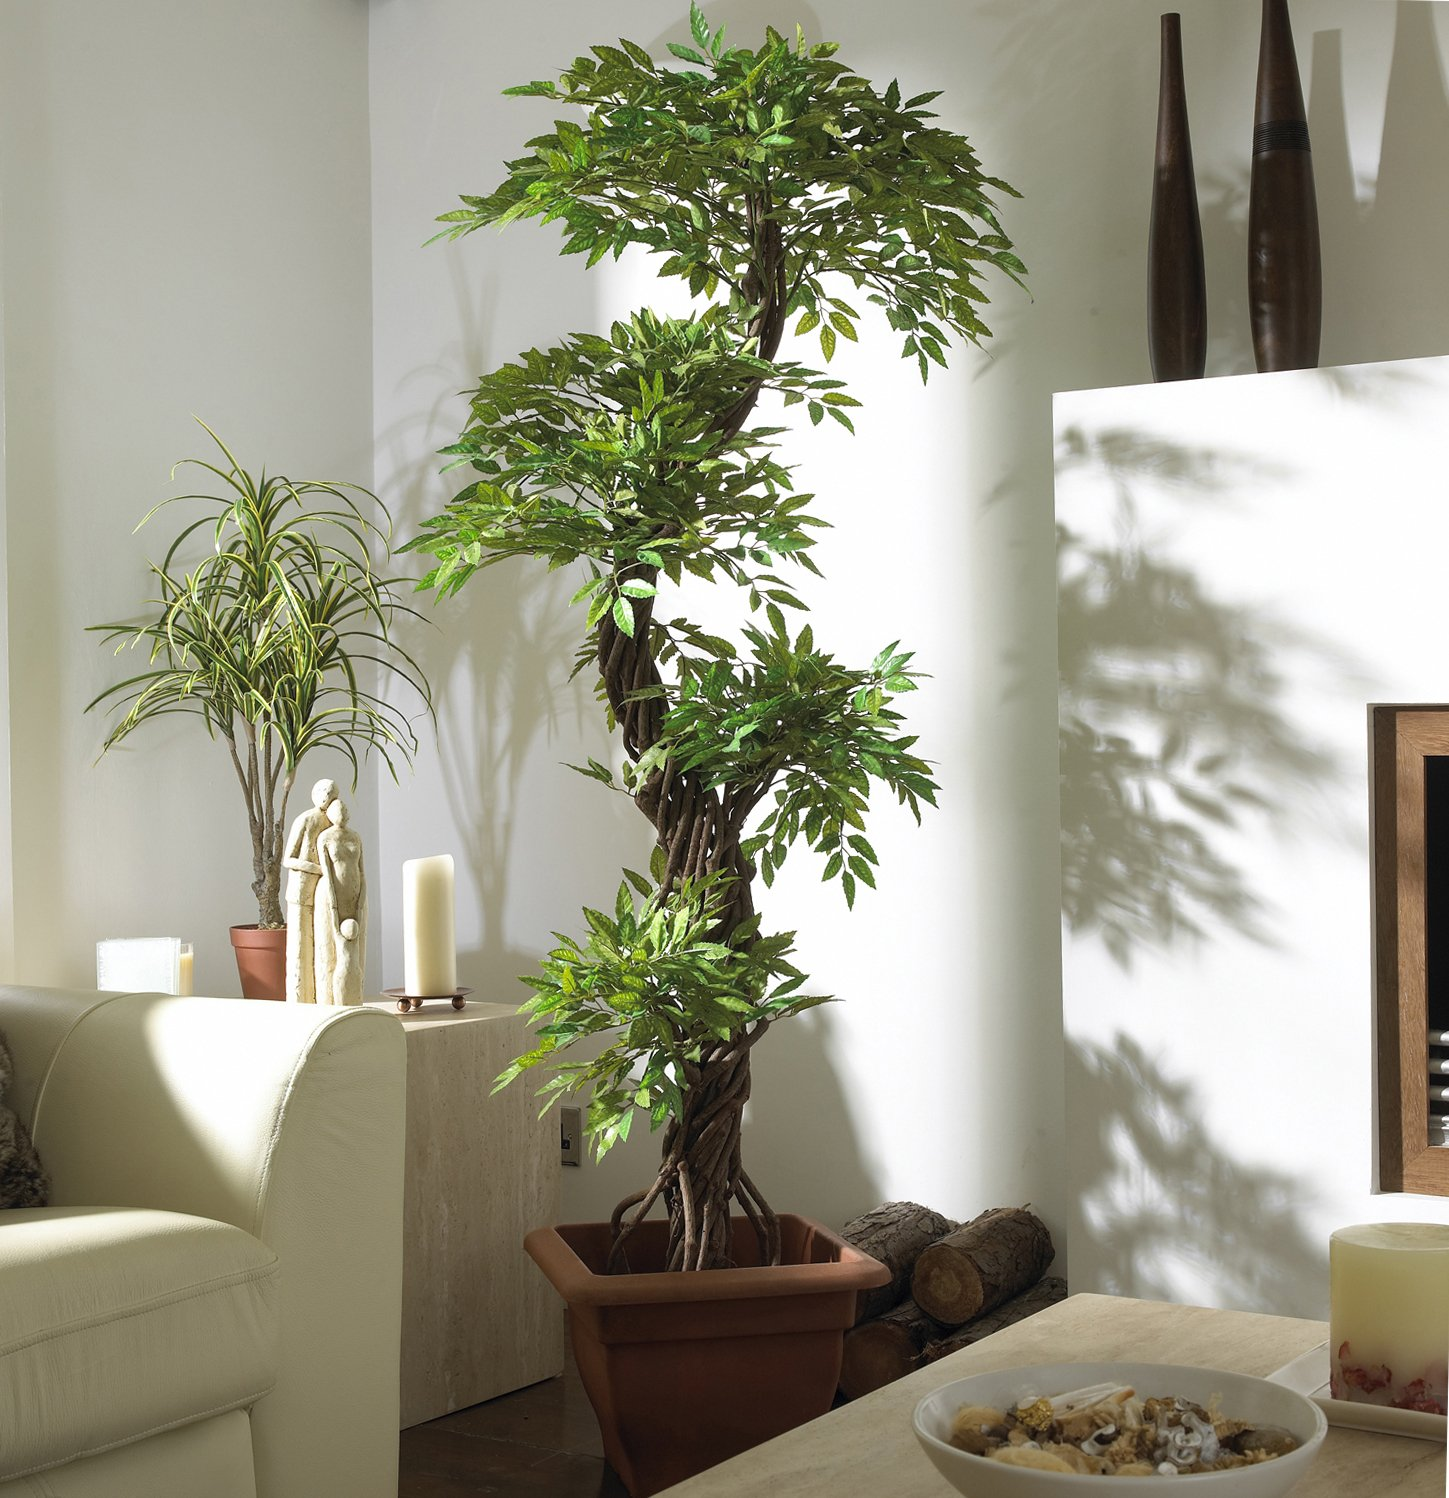 Luxury Japanese Fruticosa Tree, Handmade Artificial Plant, Replica Japanese Tree Made With Real Bark and Synthetic Leaves in a Brown Plastic Pot, 165 Centimetres Tall by Vert Lifestyle